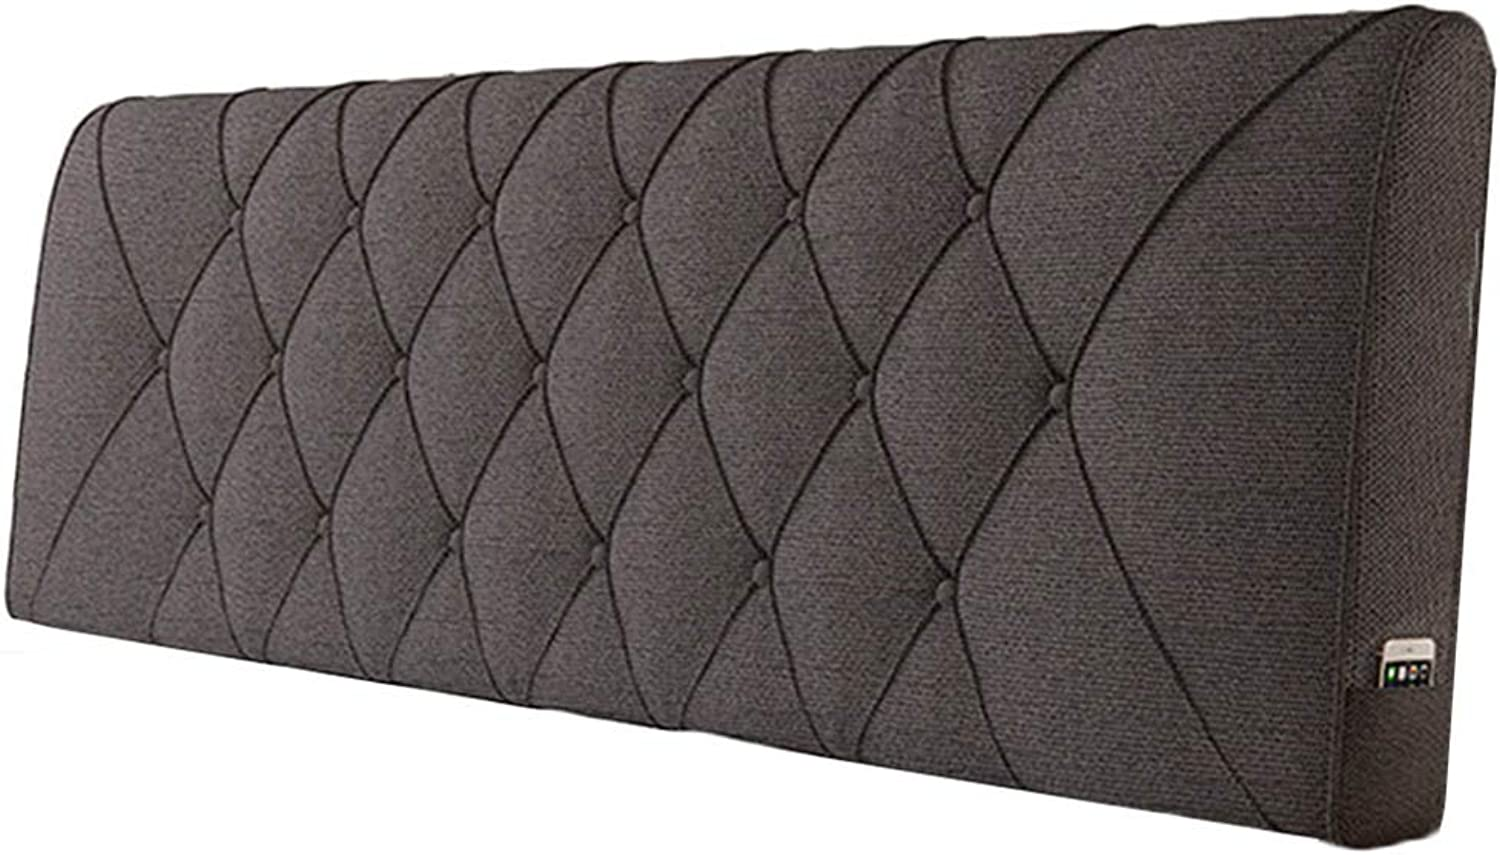 WENZHE Upholstered Fabric Headboard Bedside Cushion Pads Cover Bed Wedges Backrest Waist Pad Cloth Waist Belt Backrest Washable Home Bedroom Multifunction, 5 colors